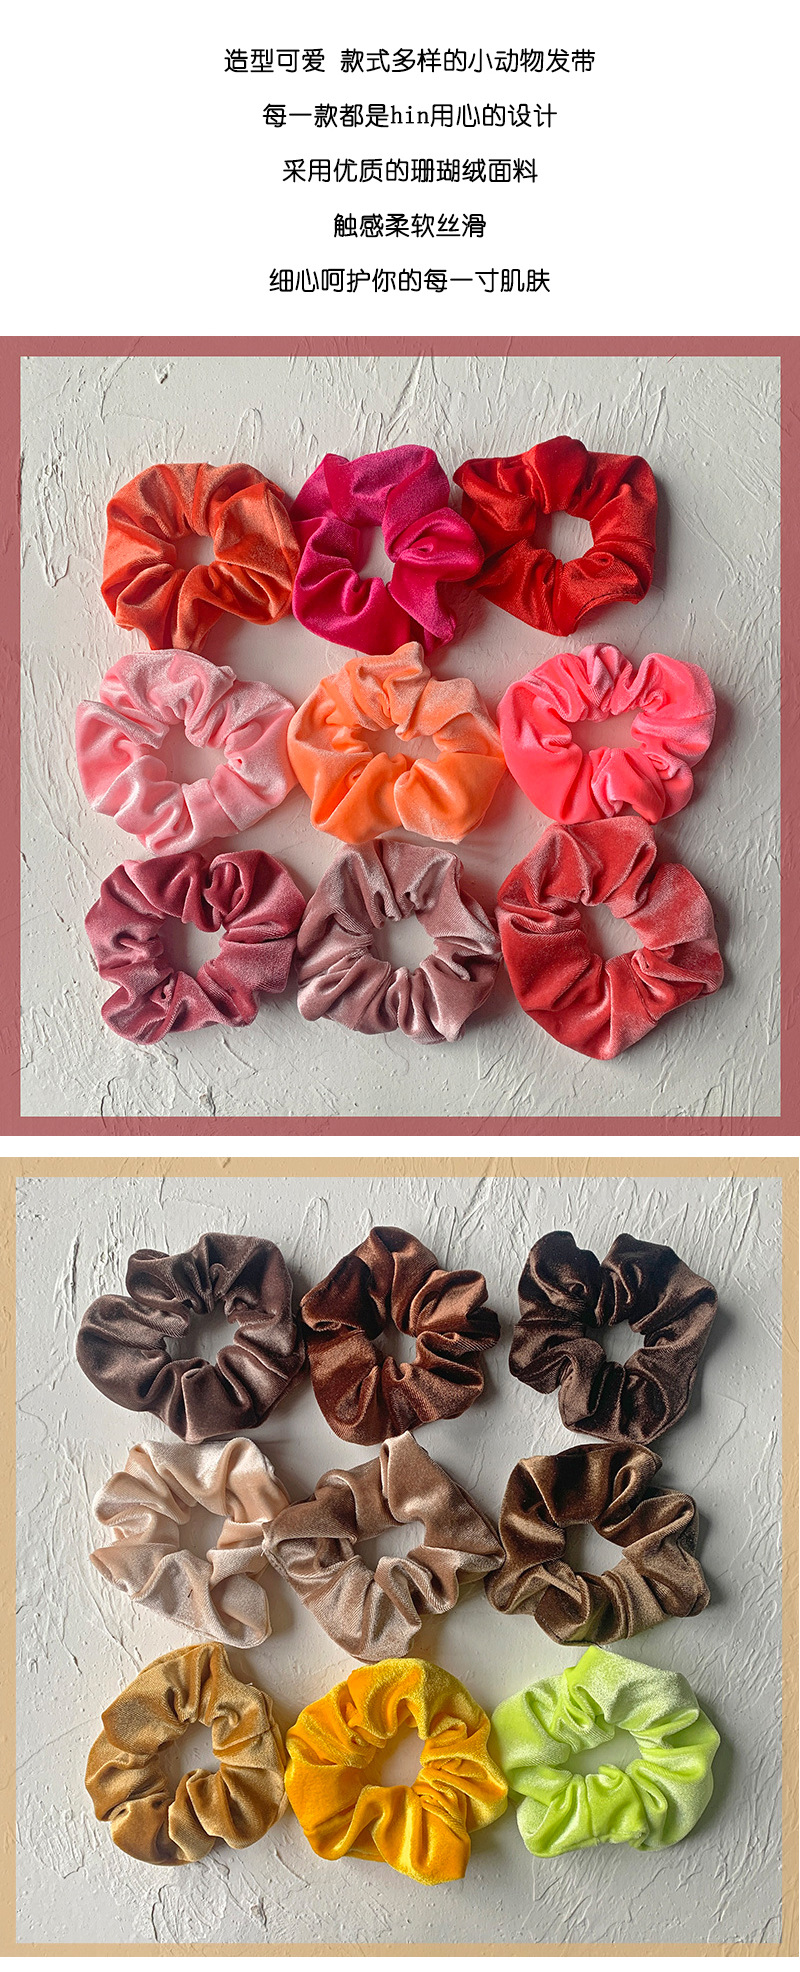 hot hair ring 46 color gold velvet large intestine hair ring head flower hair scrunchies NHOF263095